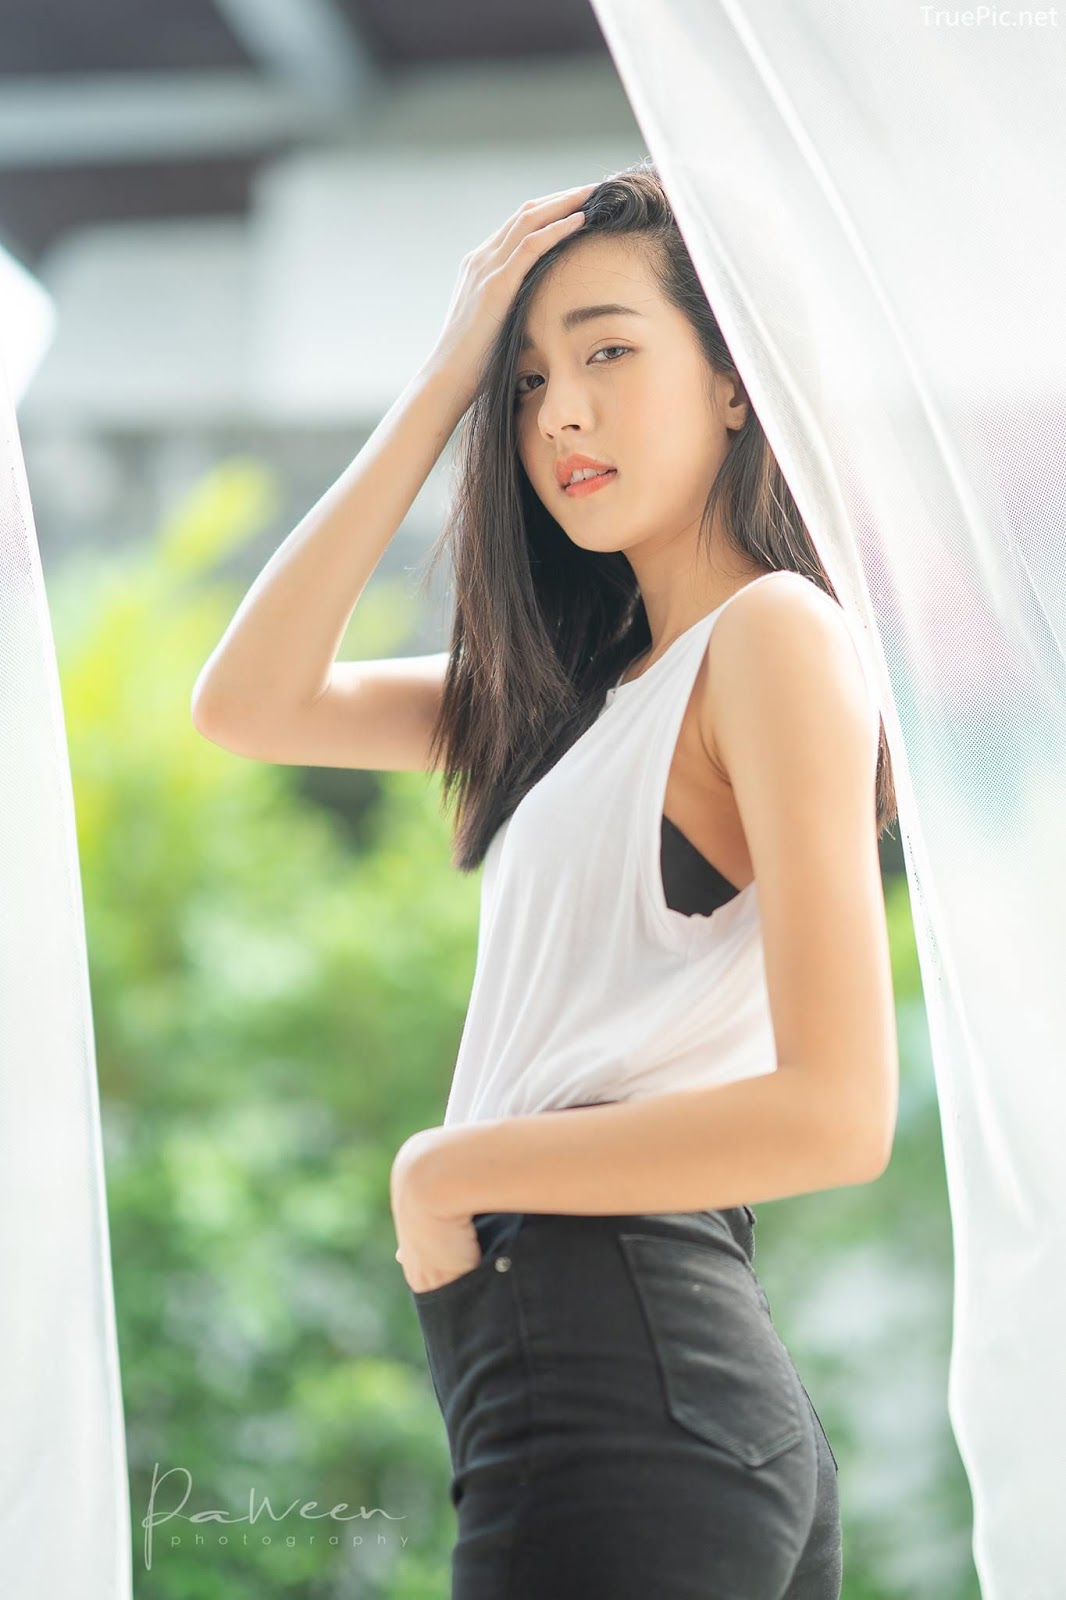 Thailand angel model Thidarut Pruethong - Black and white outfit for great day